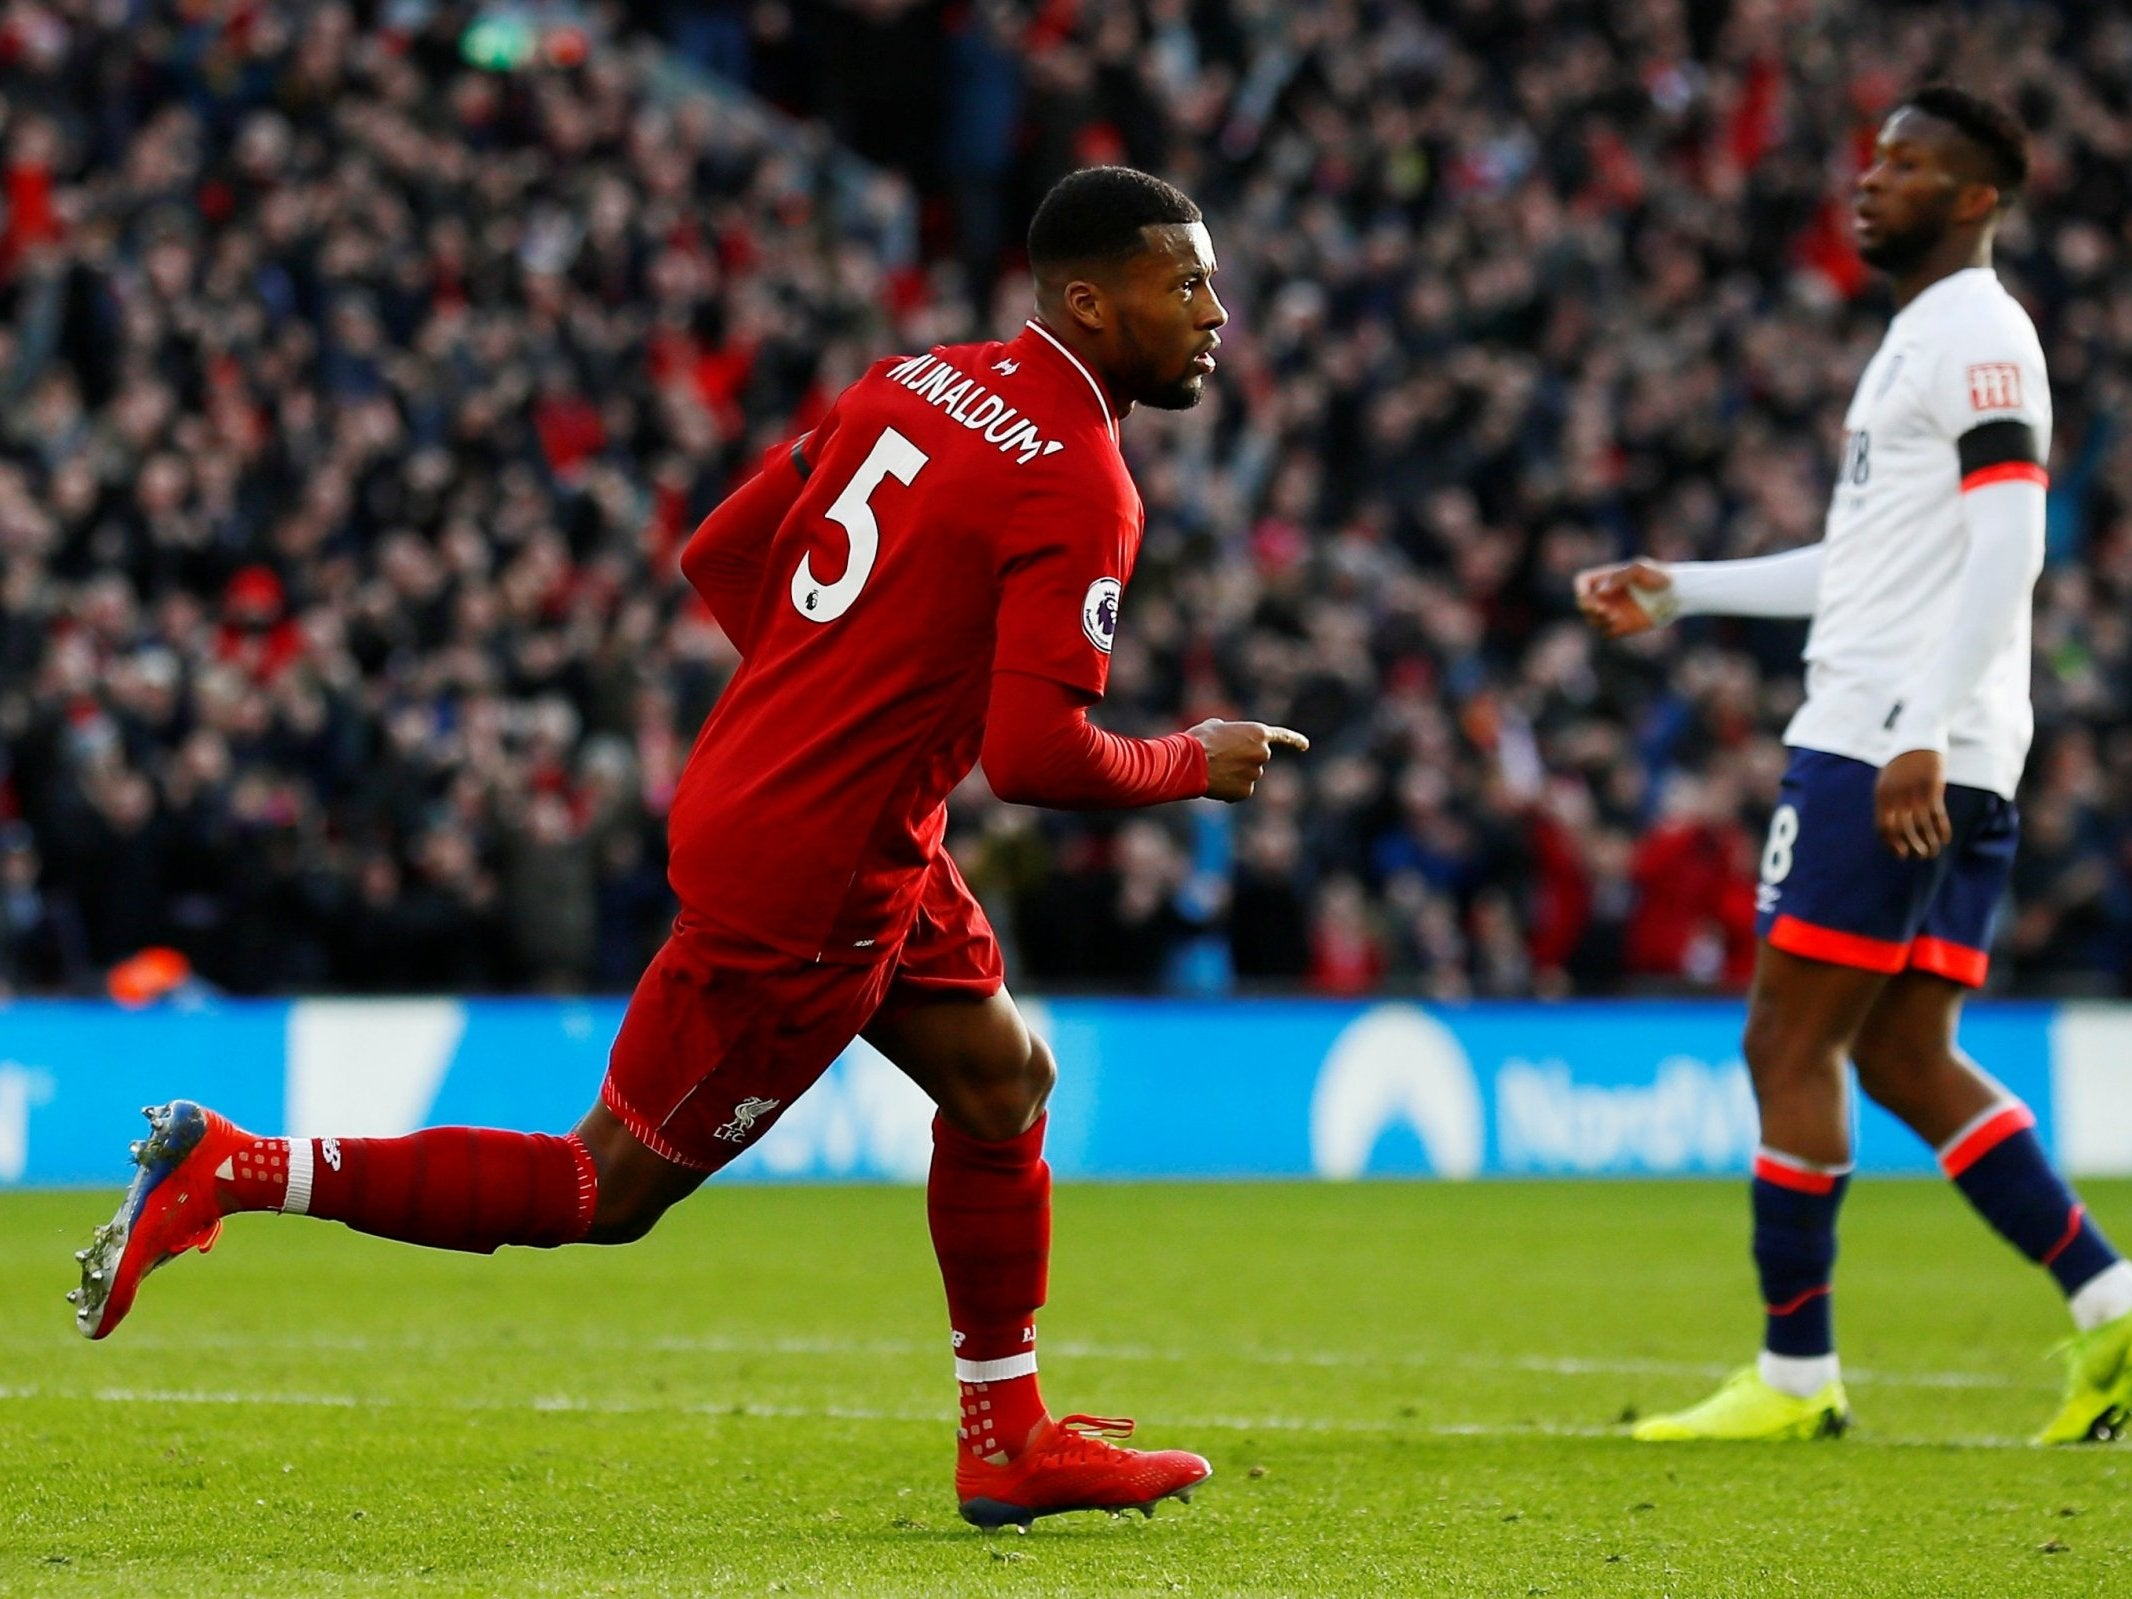 Liverpool vs Bournemouth player ratings: Mohamed Salah and ...